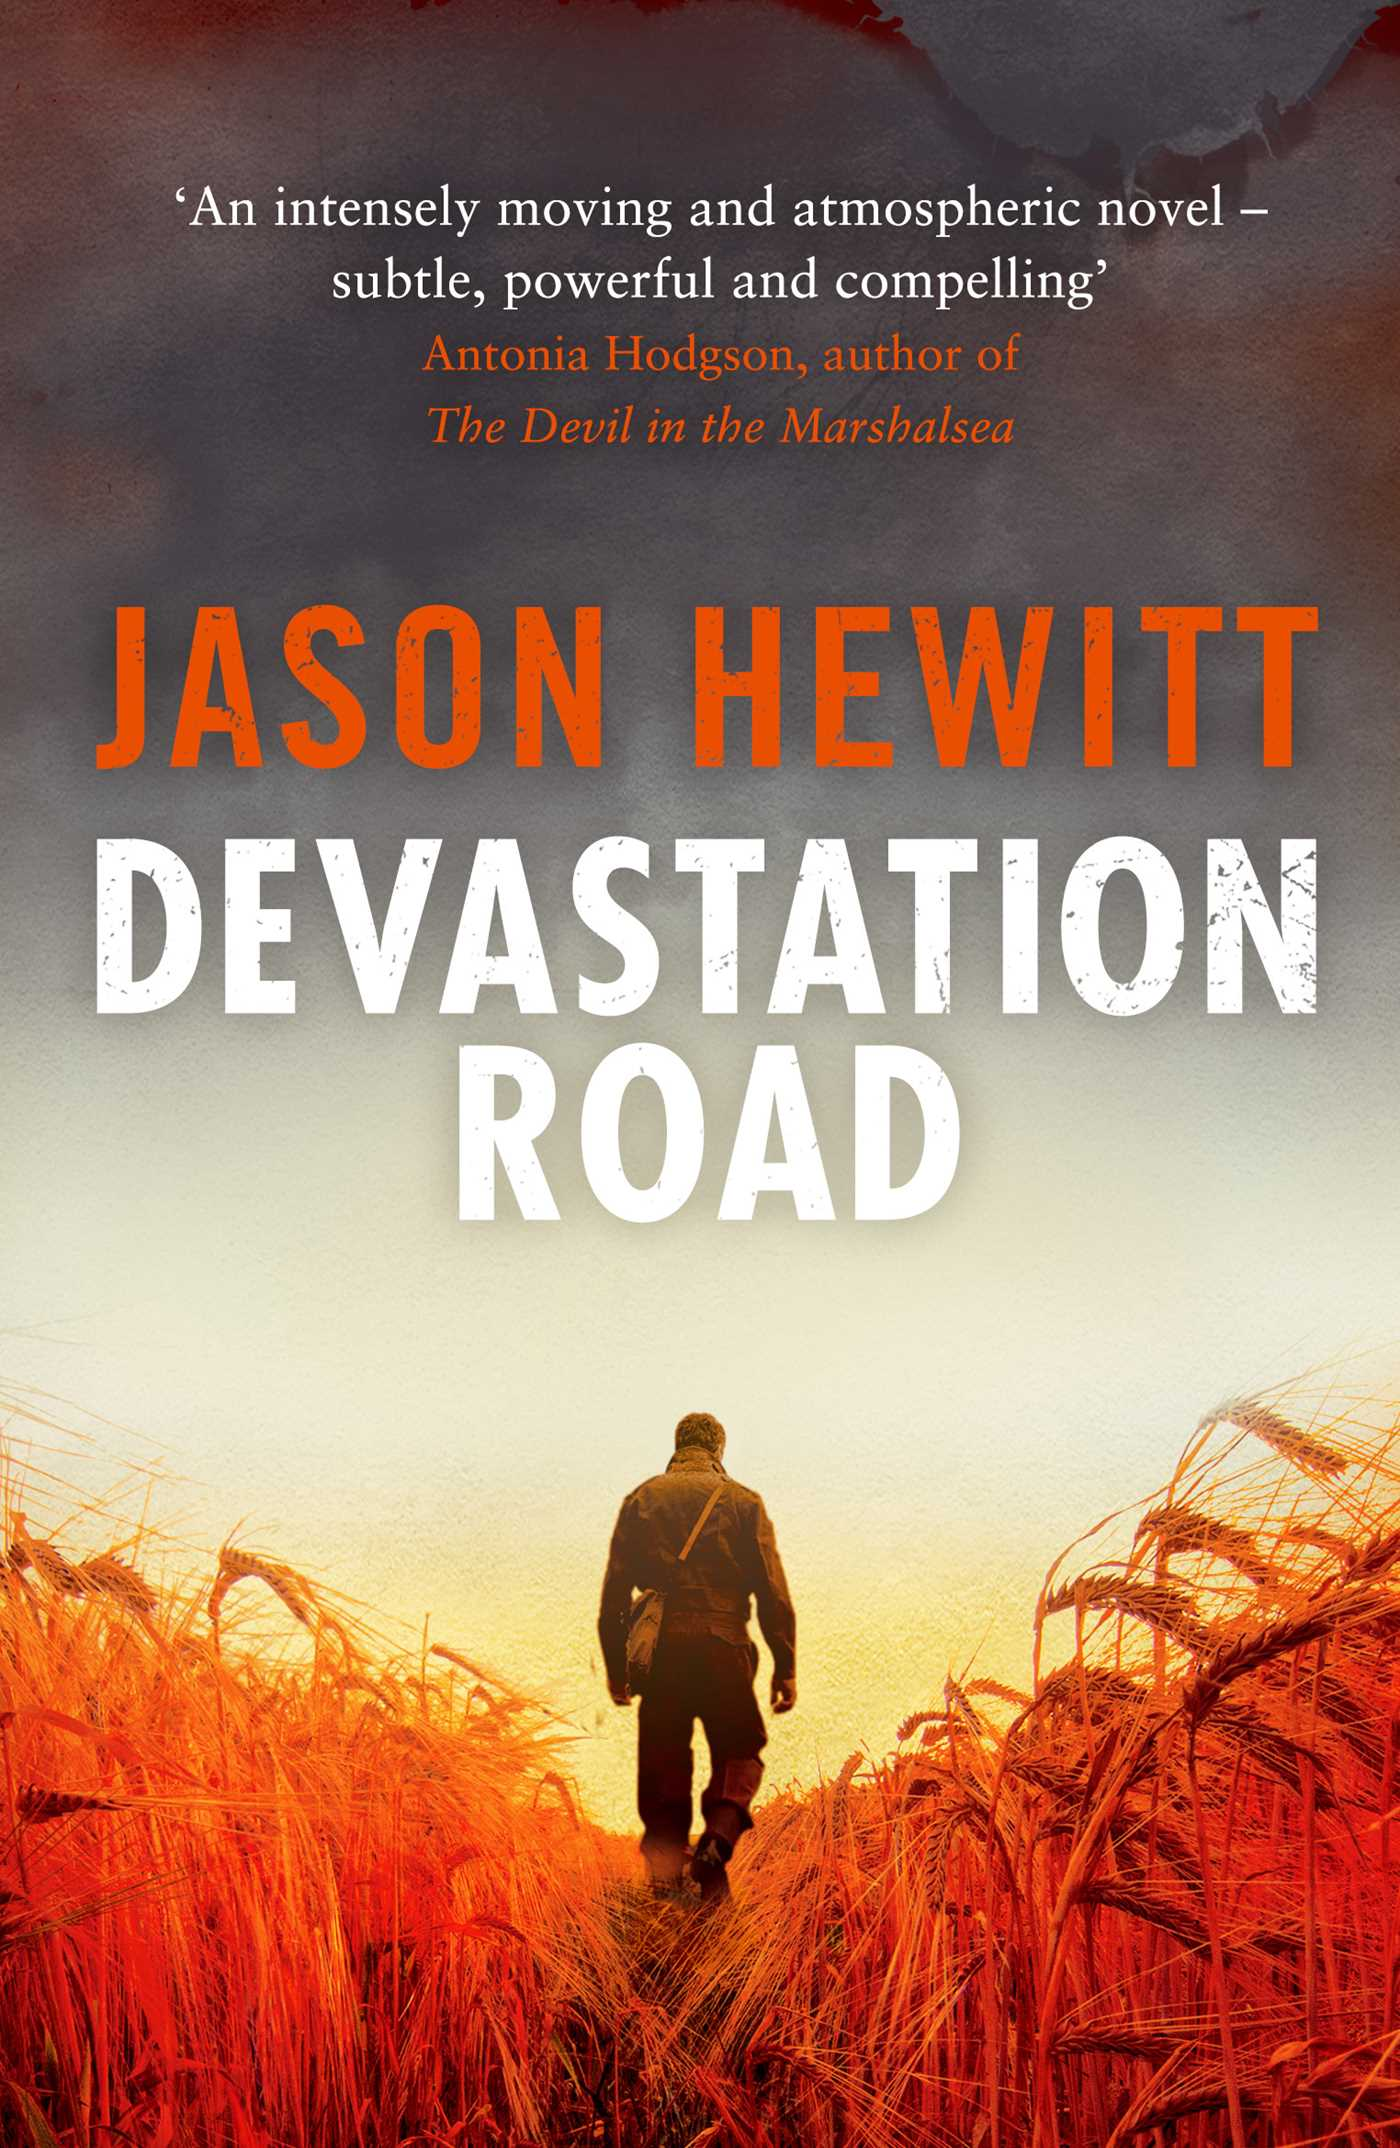 Devastation road 9781471127472 hr